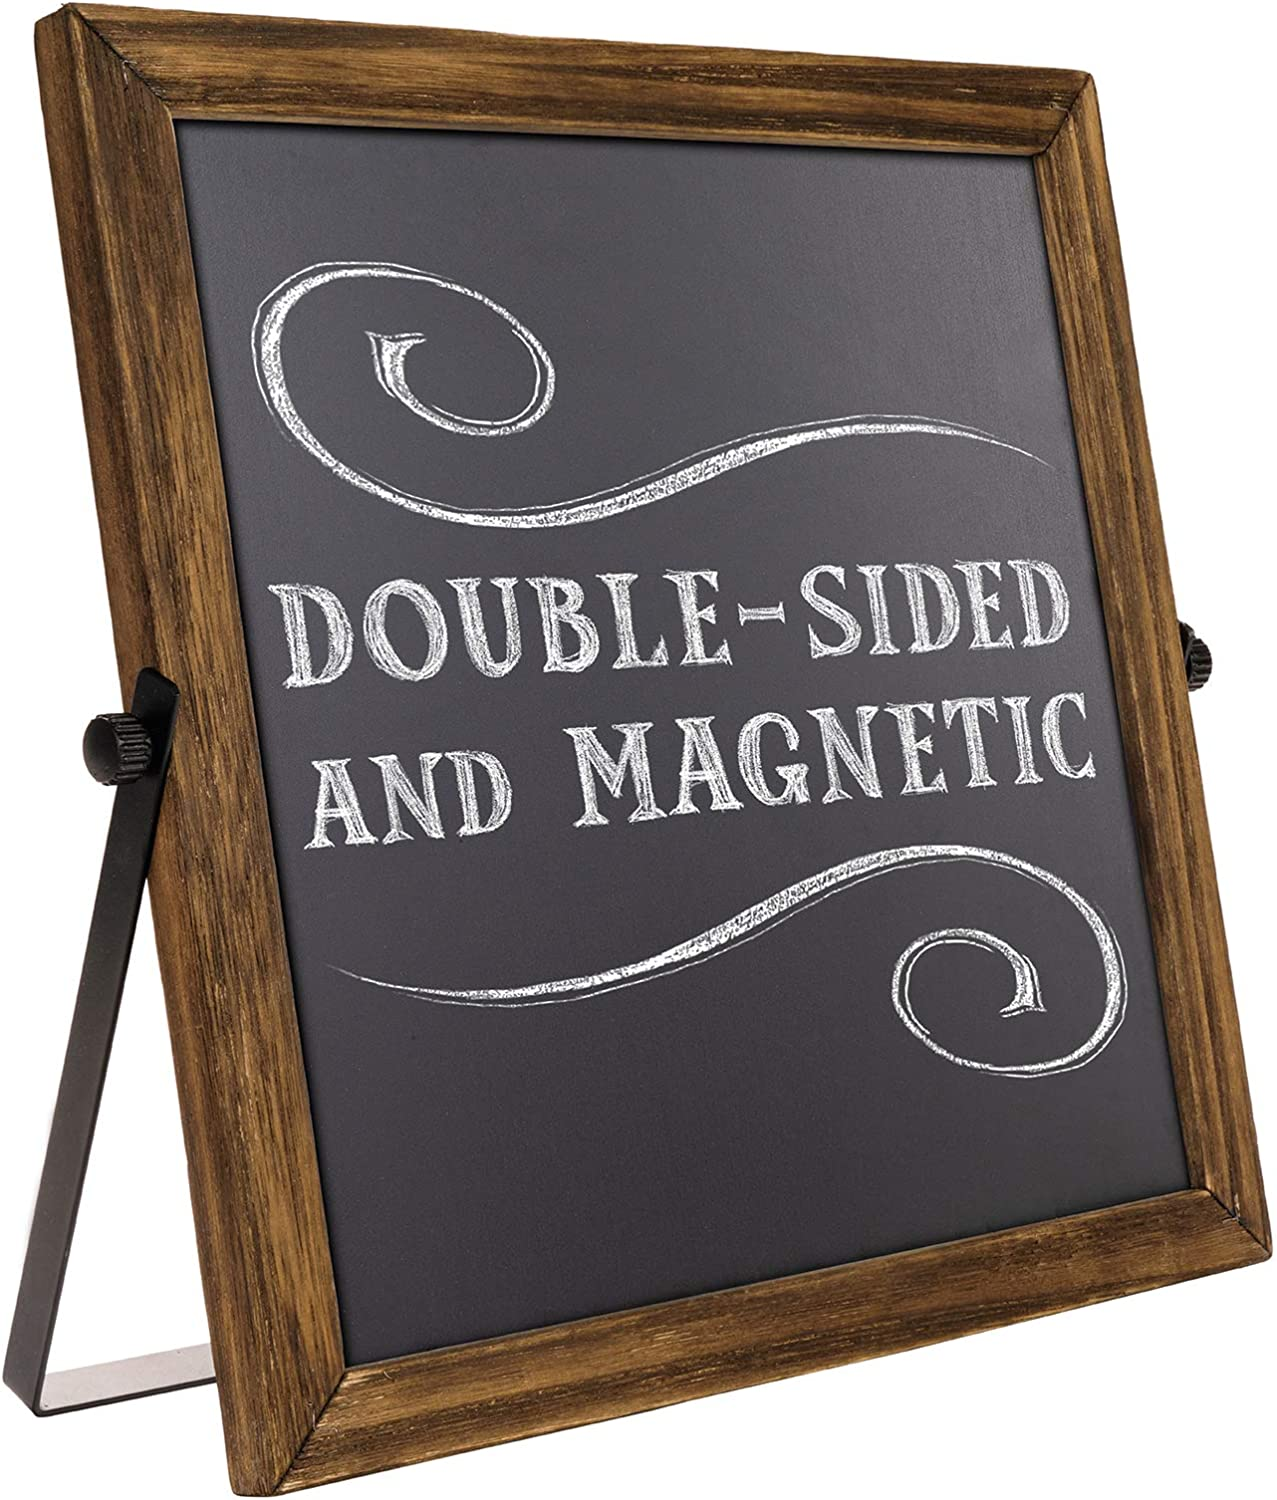 Rustic Chalkboard Sign Wooden Frame with Adjustable Stand Menu Message Board Double Sided Display Magnetic Surface Reversible 11 x 11 Inches